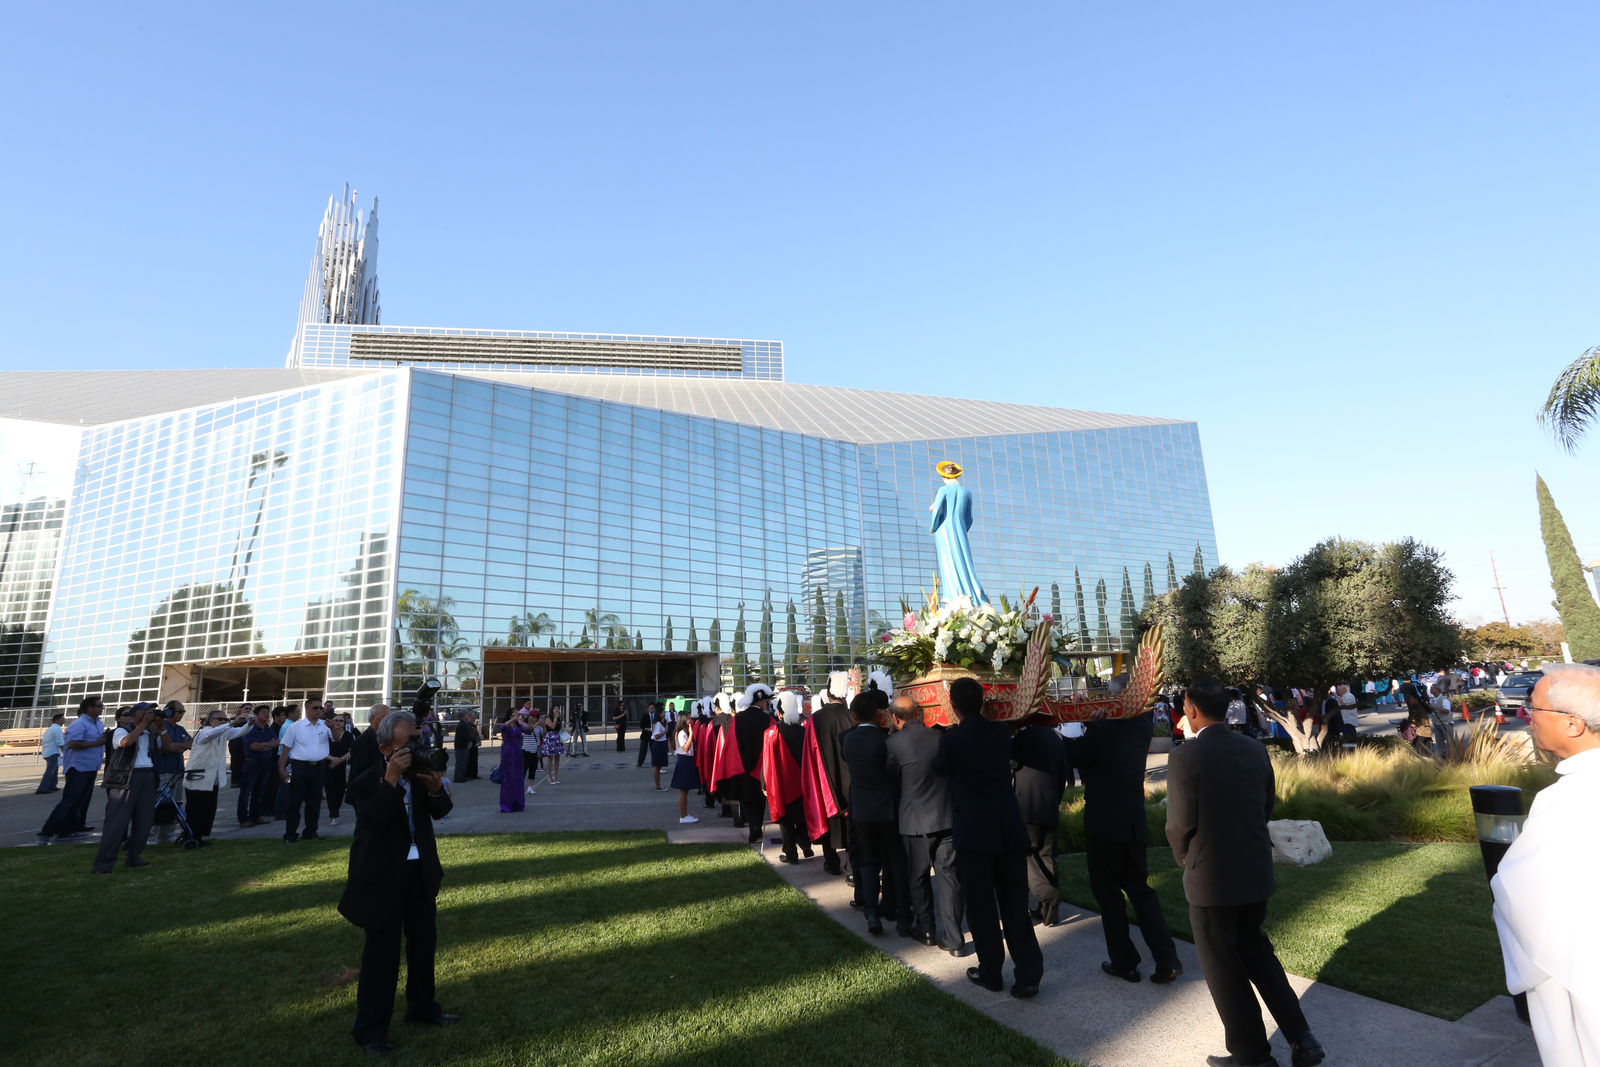 On Saturday, Oct. 21, 2017, approximately 3,000 faithful gathered on Christ Cathedral Campus for the blessing of the site of the future Our Lady of La Vang Shrine. Photo courtesy Diocese of Orange.